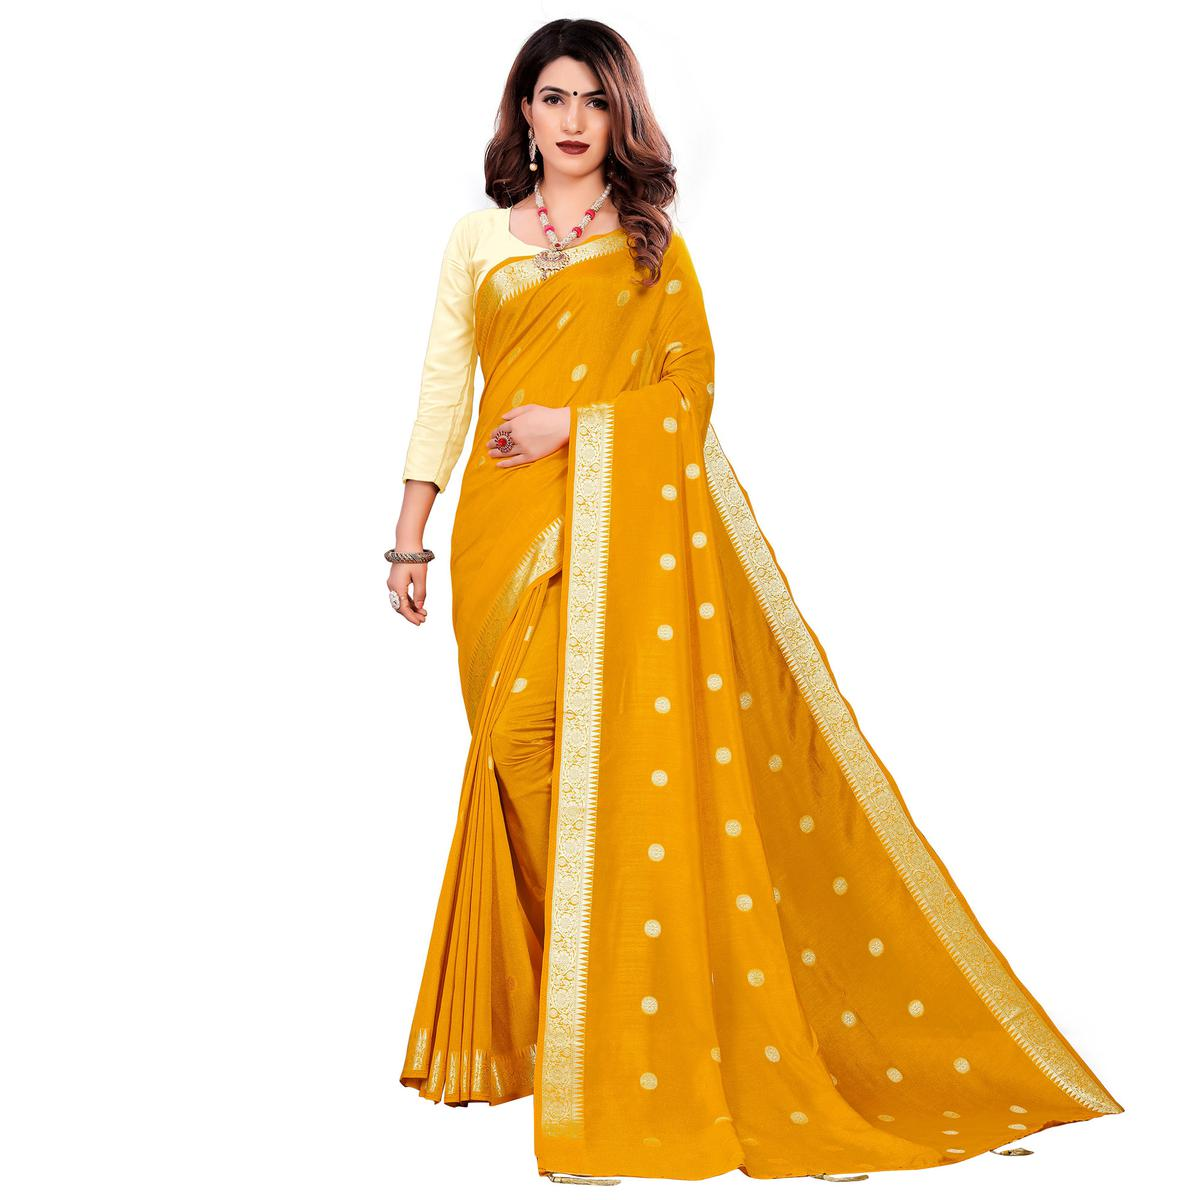 Beautiful Mustard Yellow Colored Casual Wear Embroidered Art Silk Saree With Tassels